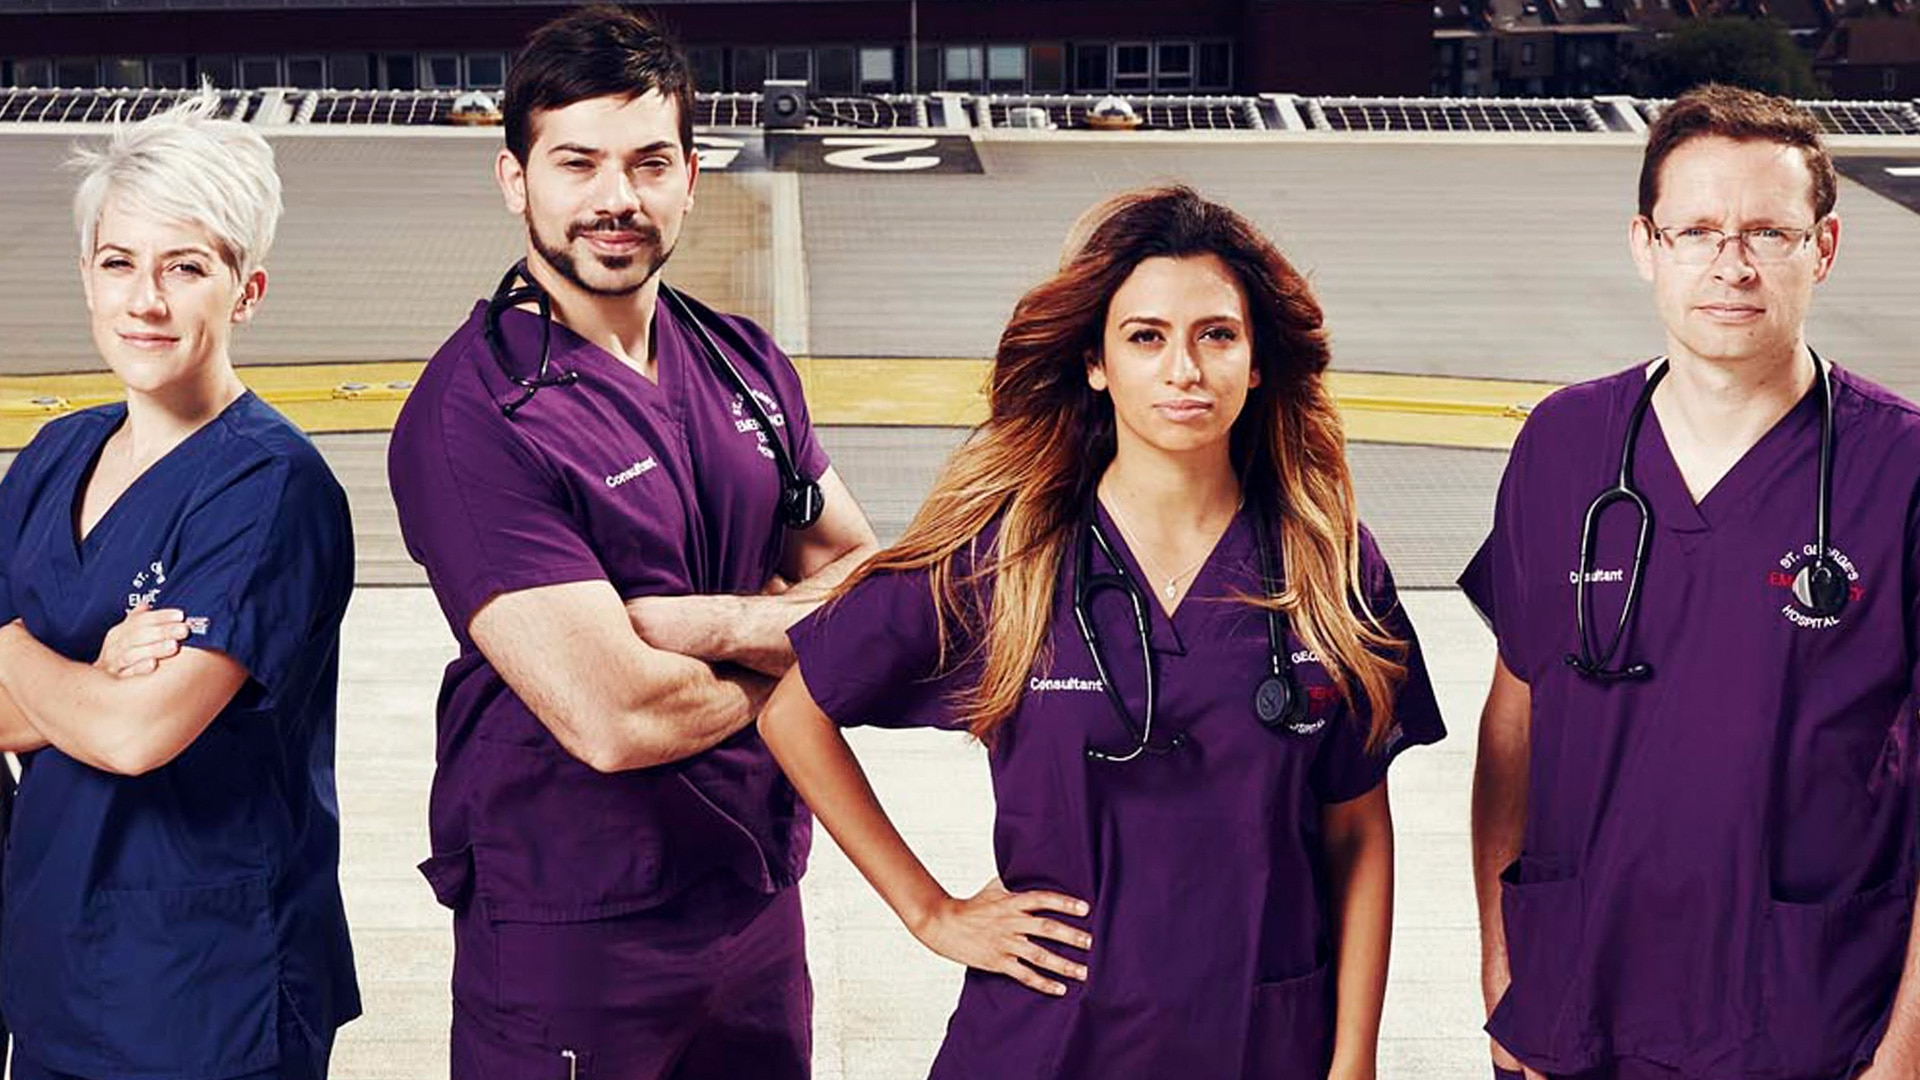 24 Hours in A&E - Episode Guide - All 4